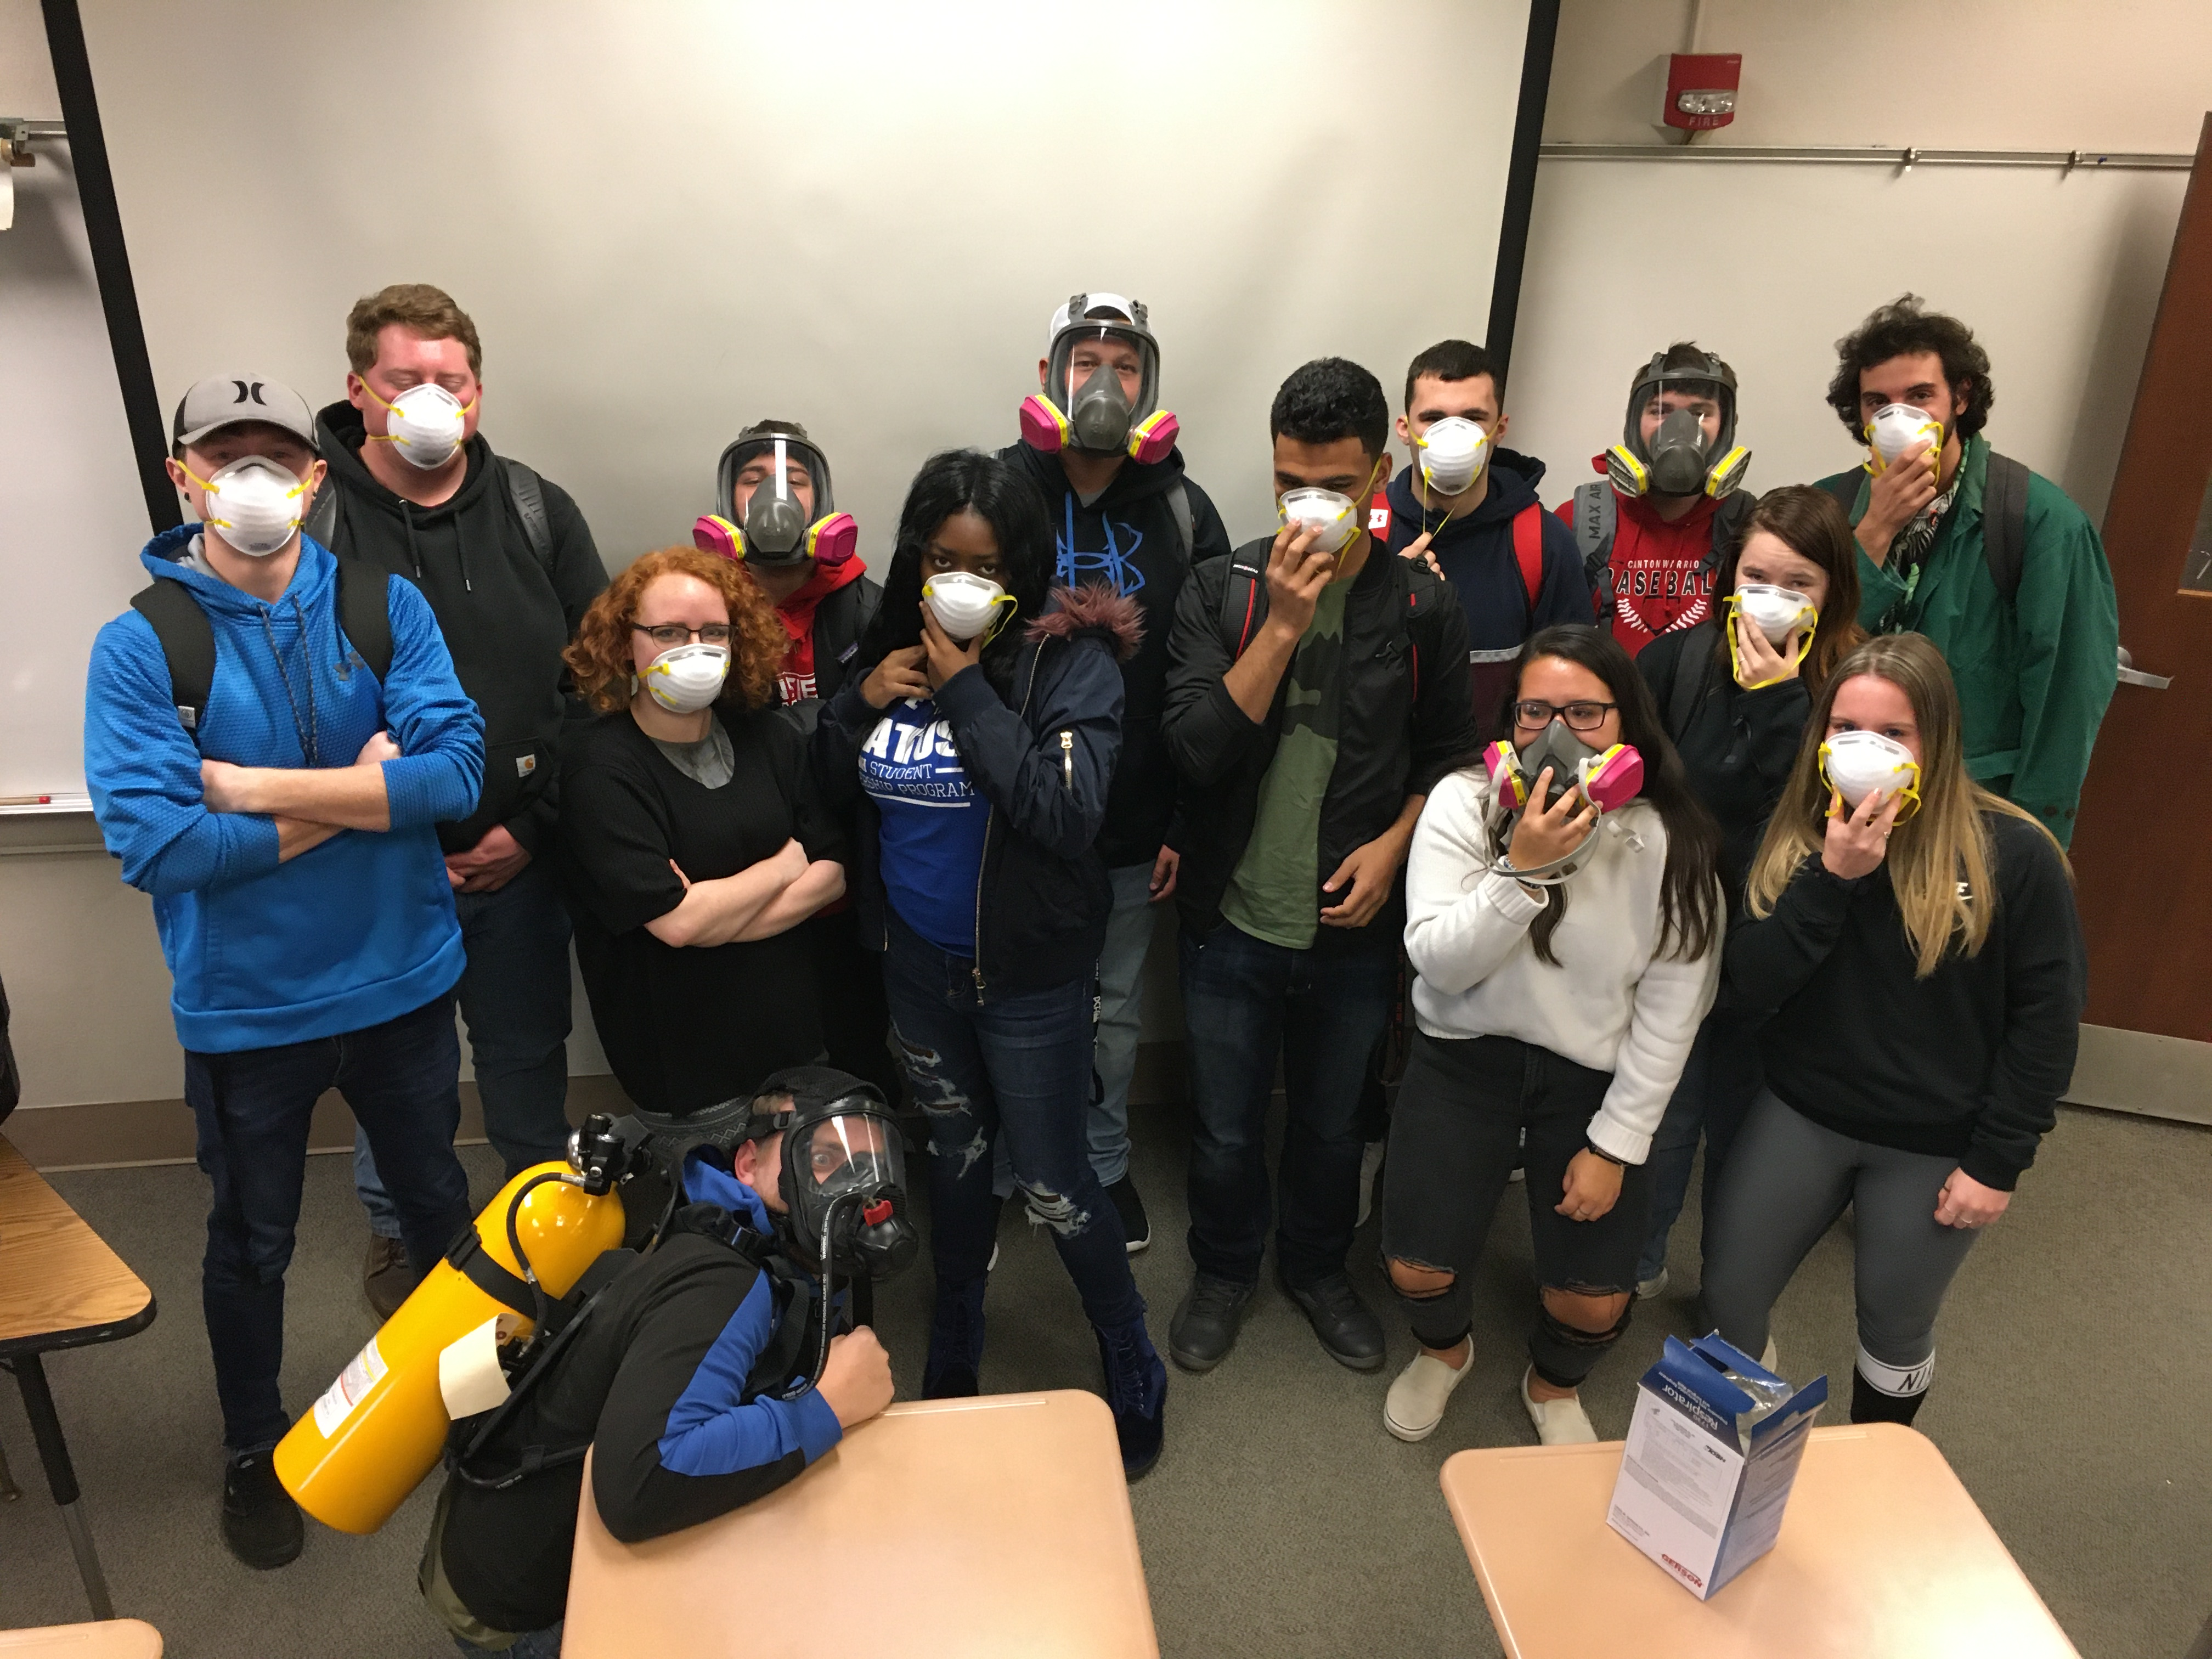 Students in safety masks